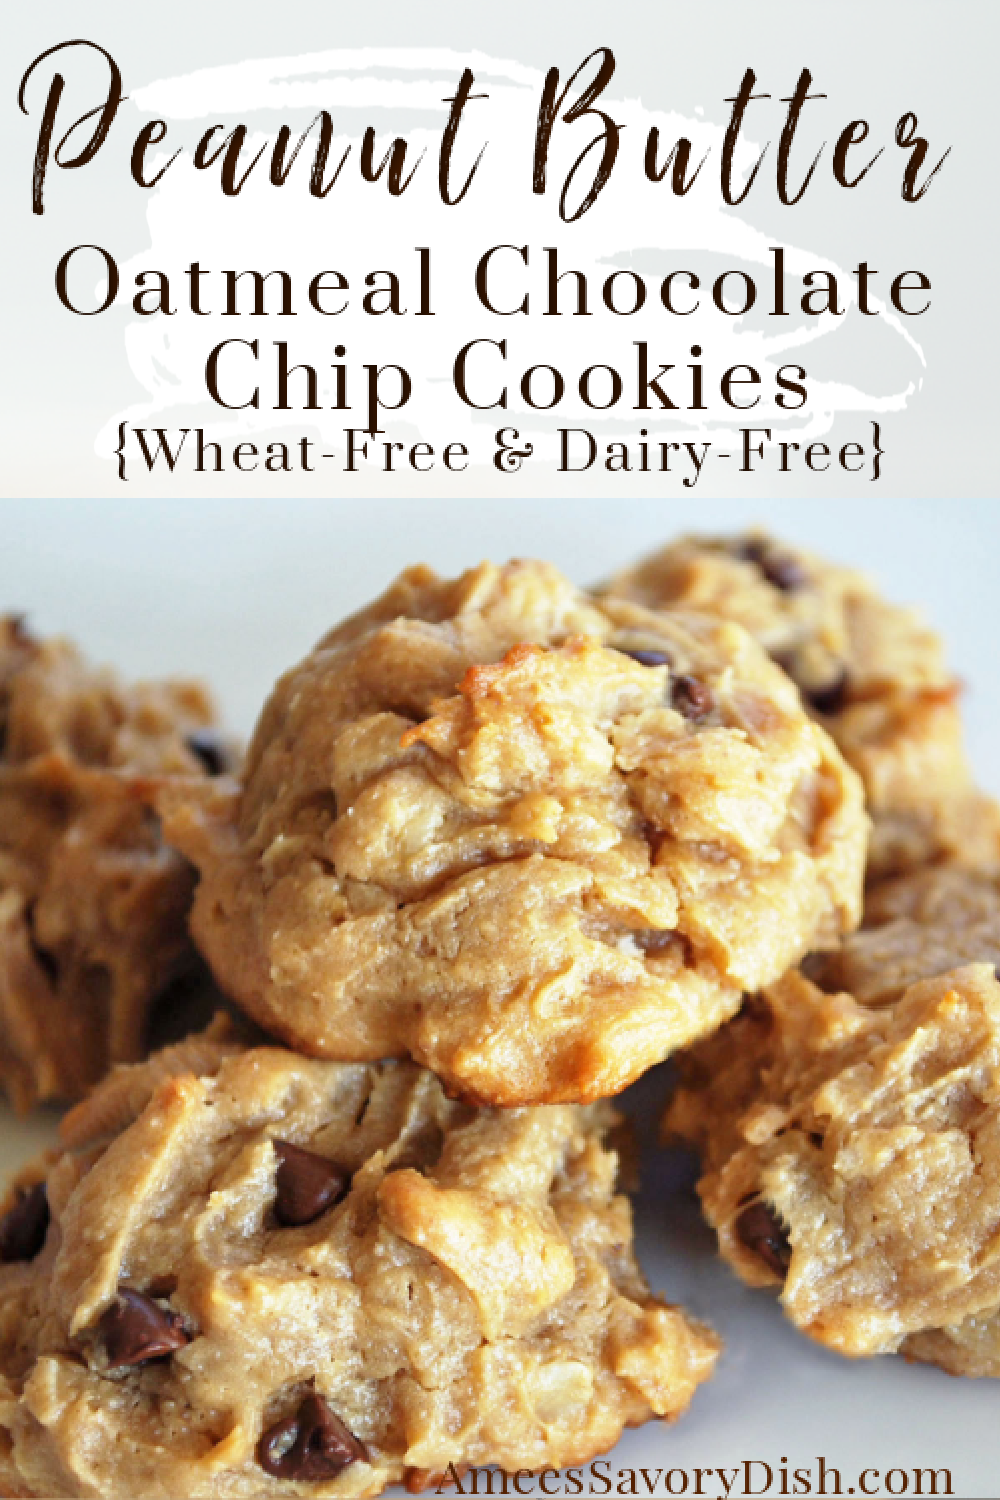 These peanut butter oatmeal chocolate chip cookies are a delicious wheat-free and dairy-free cookie recipe made with oats, peanut butter, and semisweet chocolate chips. #wheatfreecookies #dairyfreedessert #healthiercookies #peanutbuttercookies #cookierecipe via @Ameessavorydish